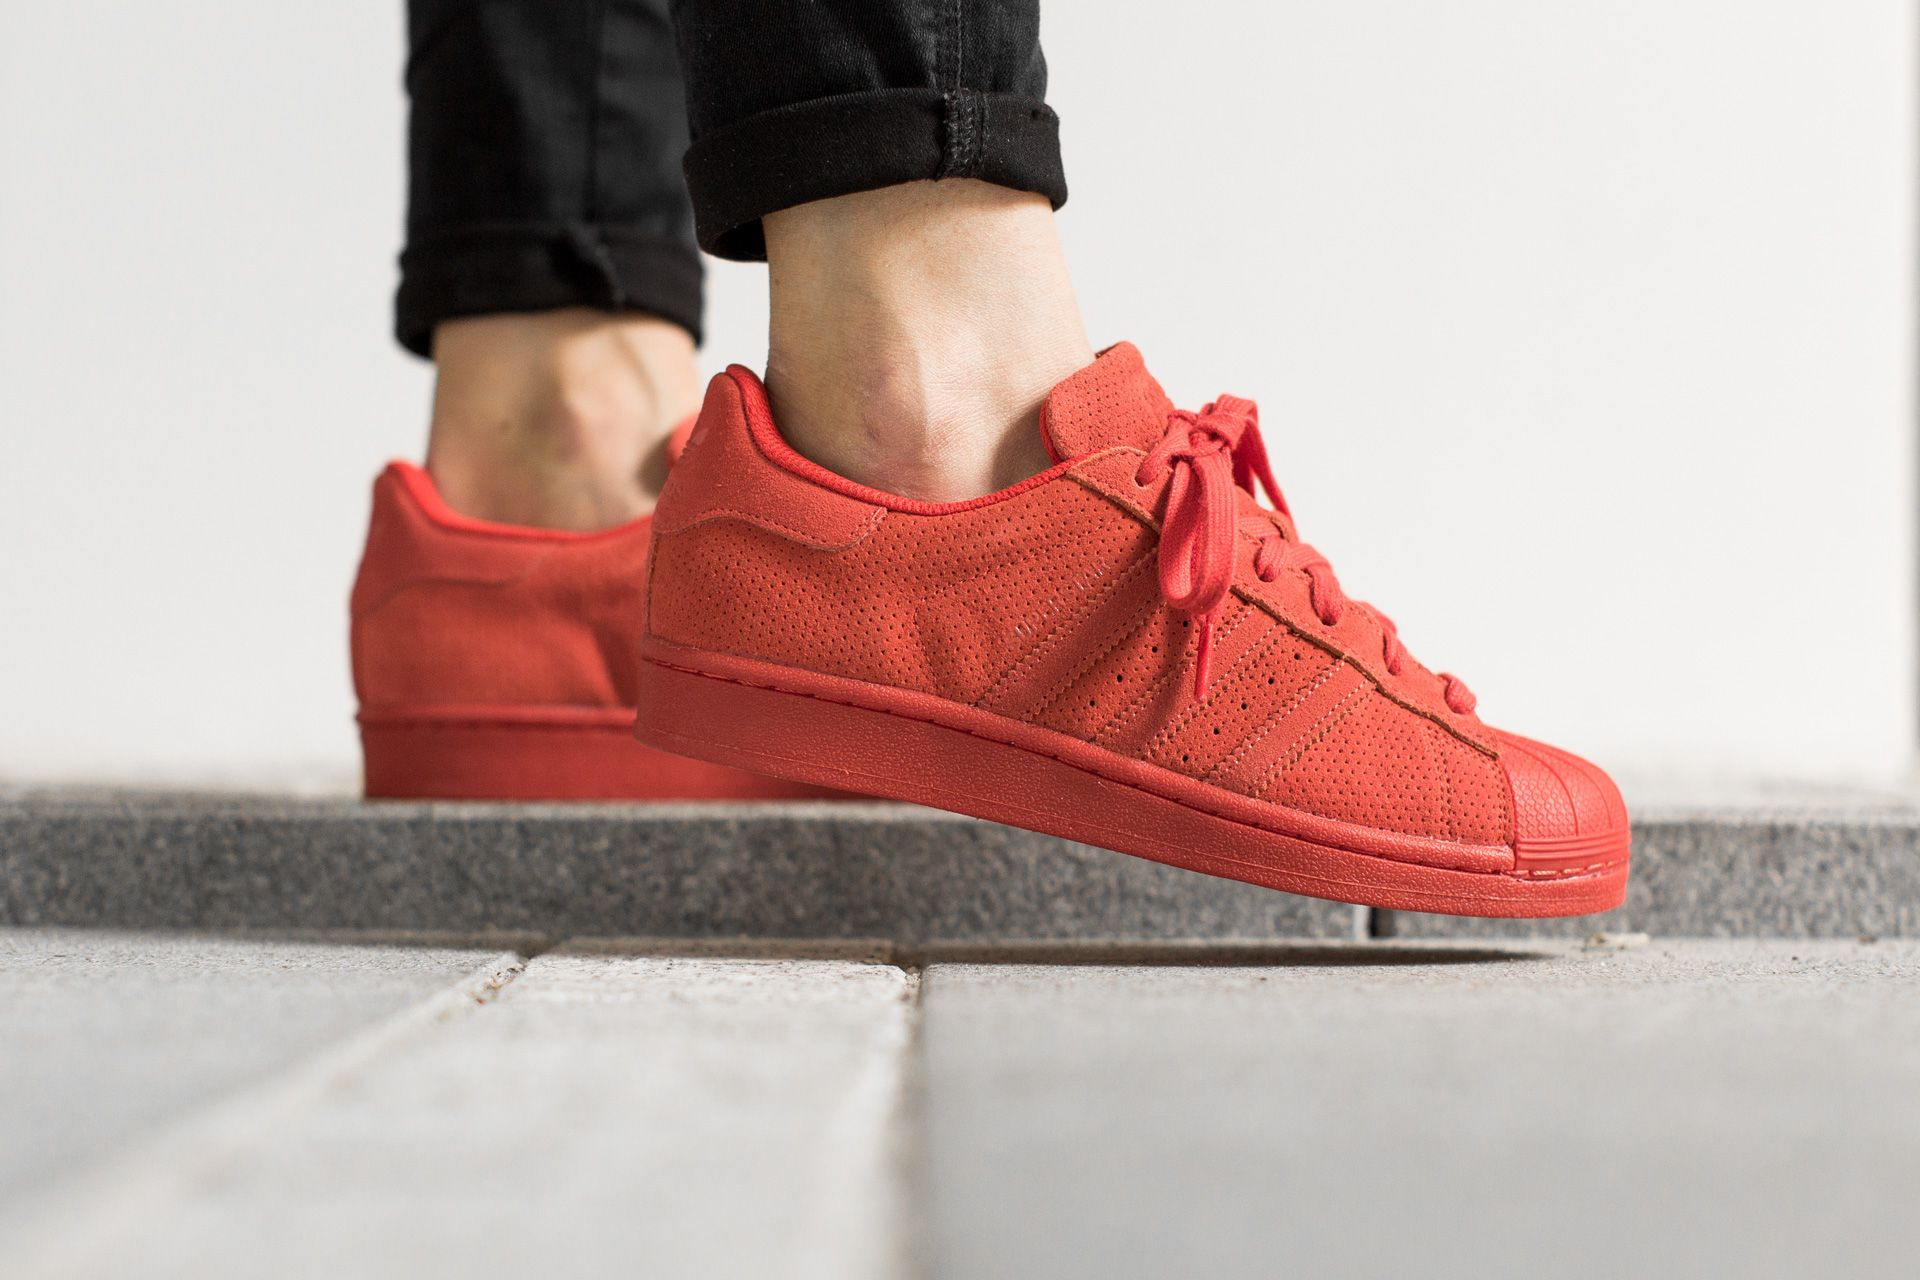 san francisco eb60c a3ac6 ADIDAS ORIGINALS SUPERSTAR RT REDREDRED available at  www.tint-footwear.comadidas-originals-superstar-rt-s79475 adidas superstar  monochrome all red red ...